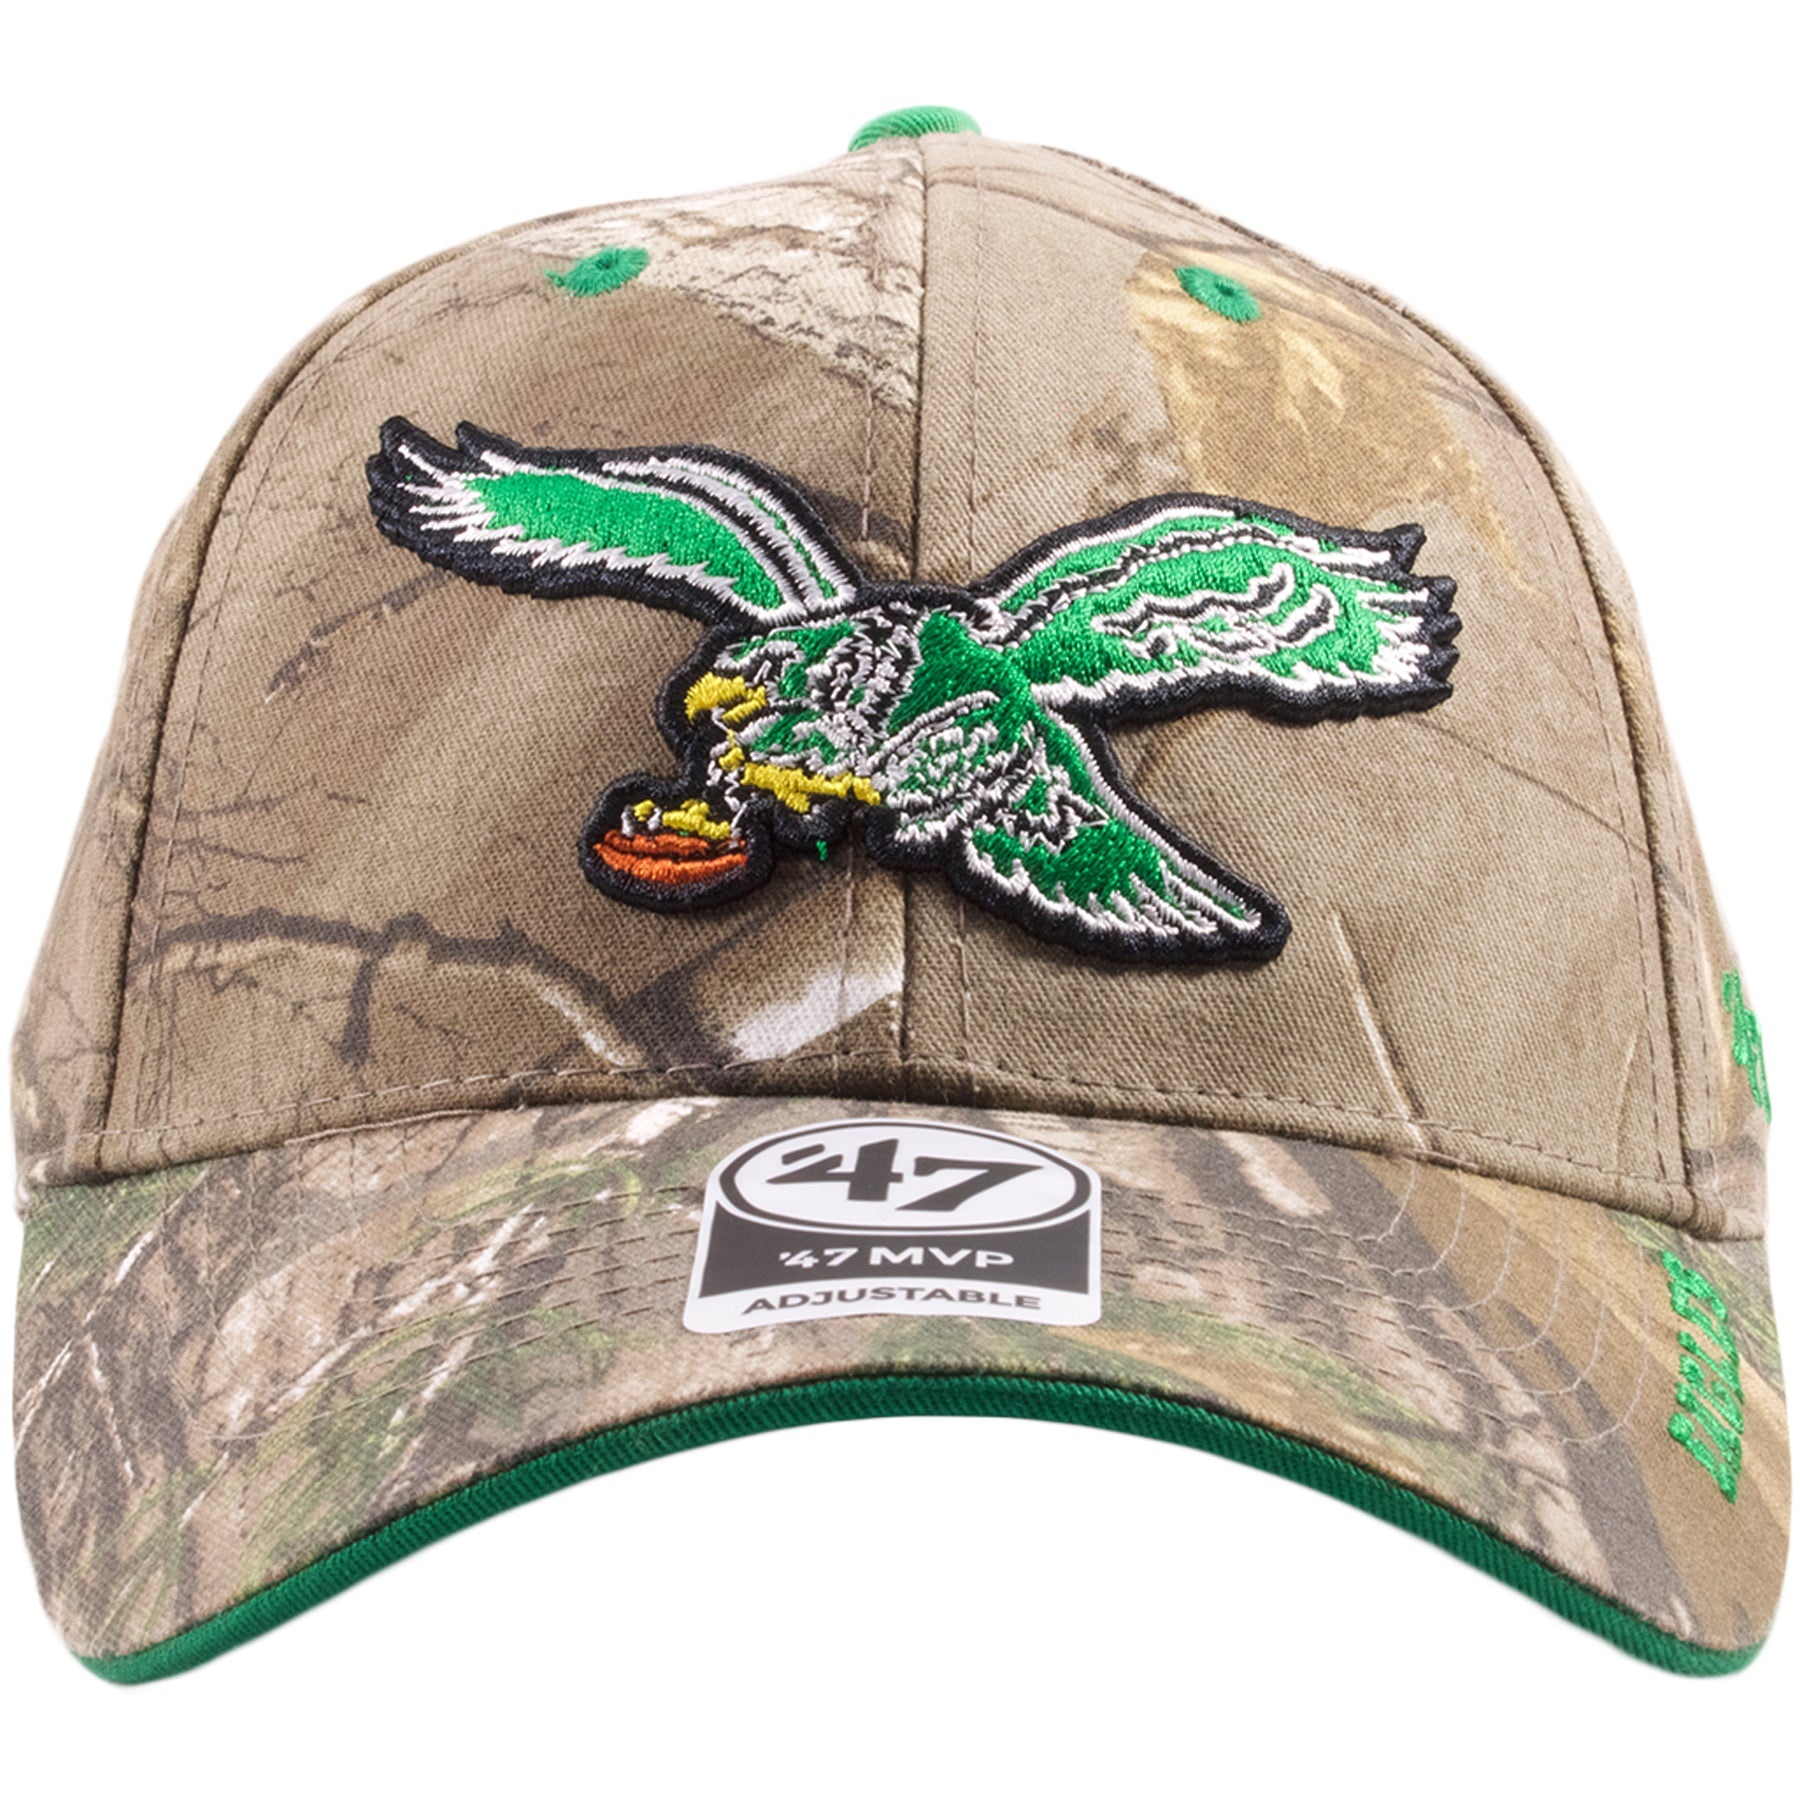 60b6a0a3 Embroidered on the front of the realtree camouflage retro throwback  philadelphia eagles dad hat, is